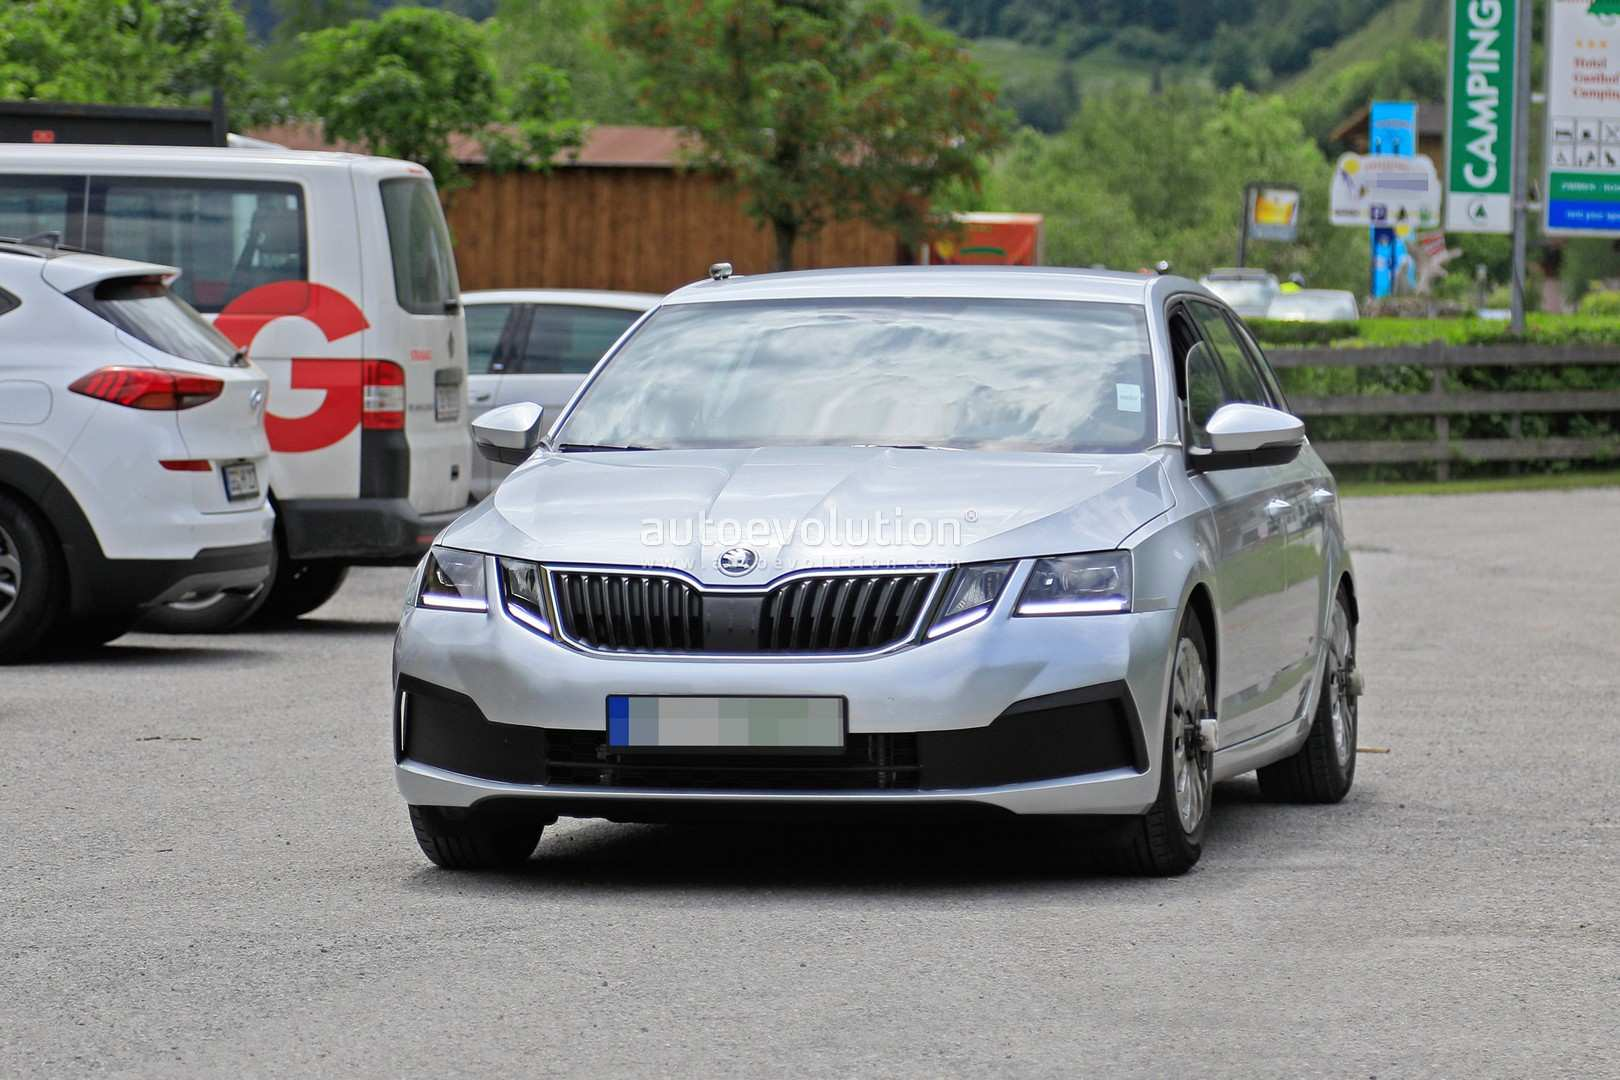 82 All New 2020 The Spy Shots Skoda Superb Spesification with 2020 The Spy Shots Skoda Superb